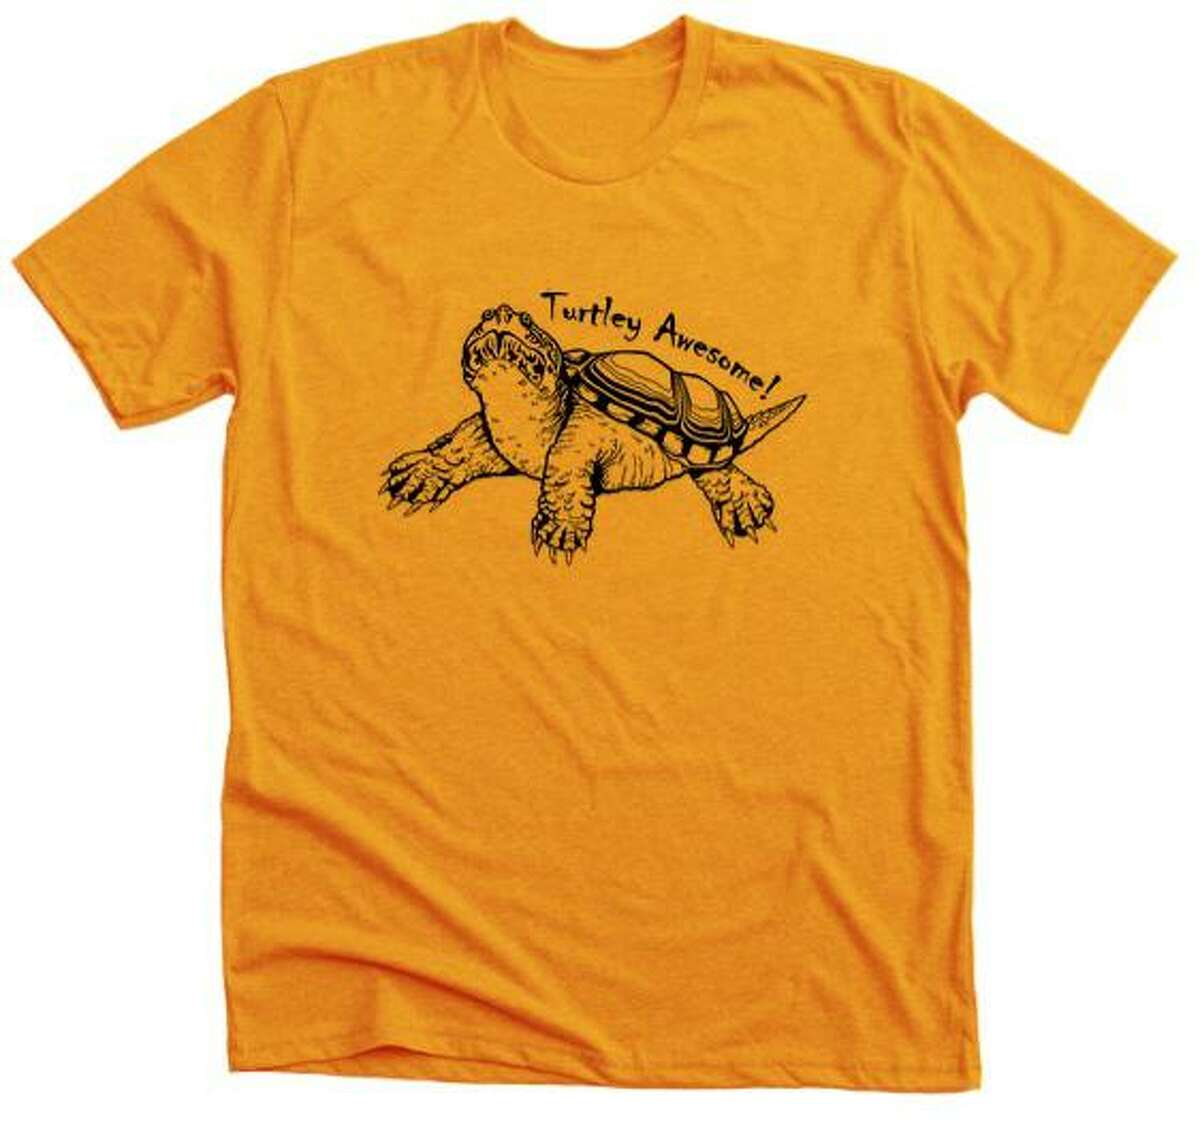 Attendees to the Wilton Street Fair and Sidewalk Sale this Saturday, July 24, will be able to pick up their Turtle t-shirts at the Woodcock Nature Center's table on the green at the sale, from the time the sale begins at 10 a.m. until its conclusion at 3 p.m.